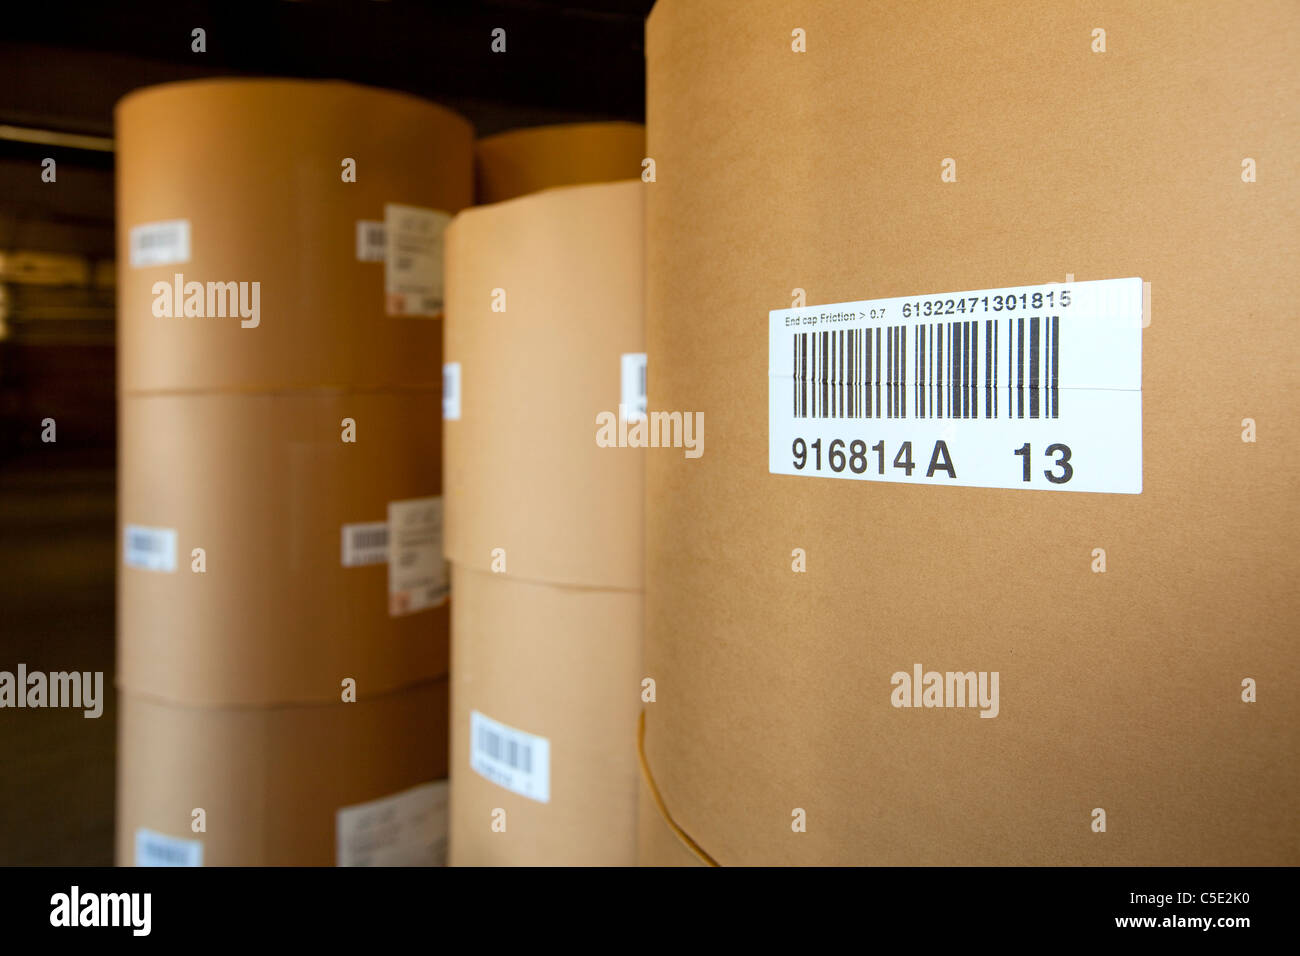 Close-up of stocked large paper rolls with bar codes - Stock Image